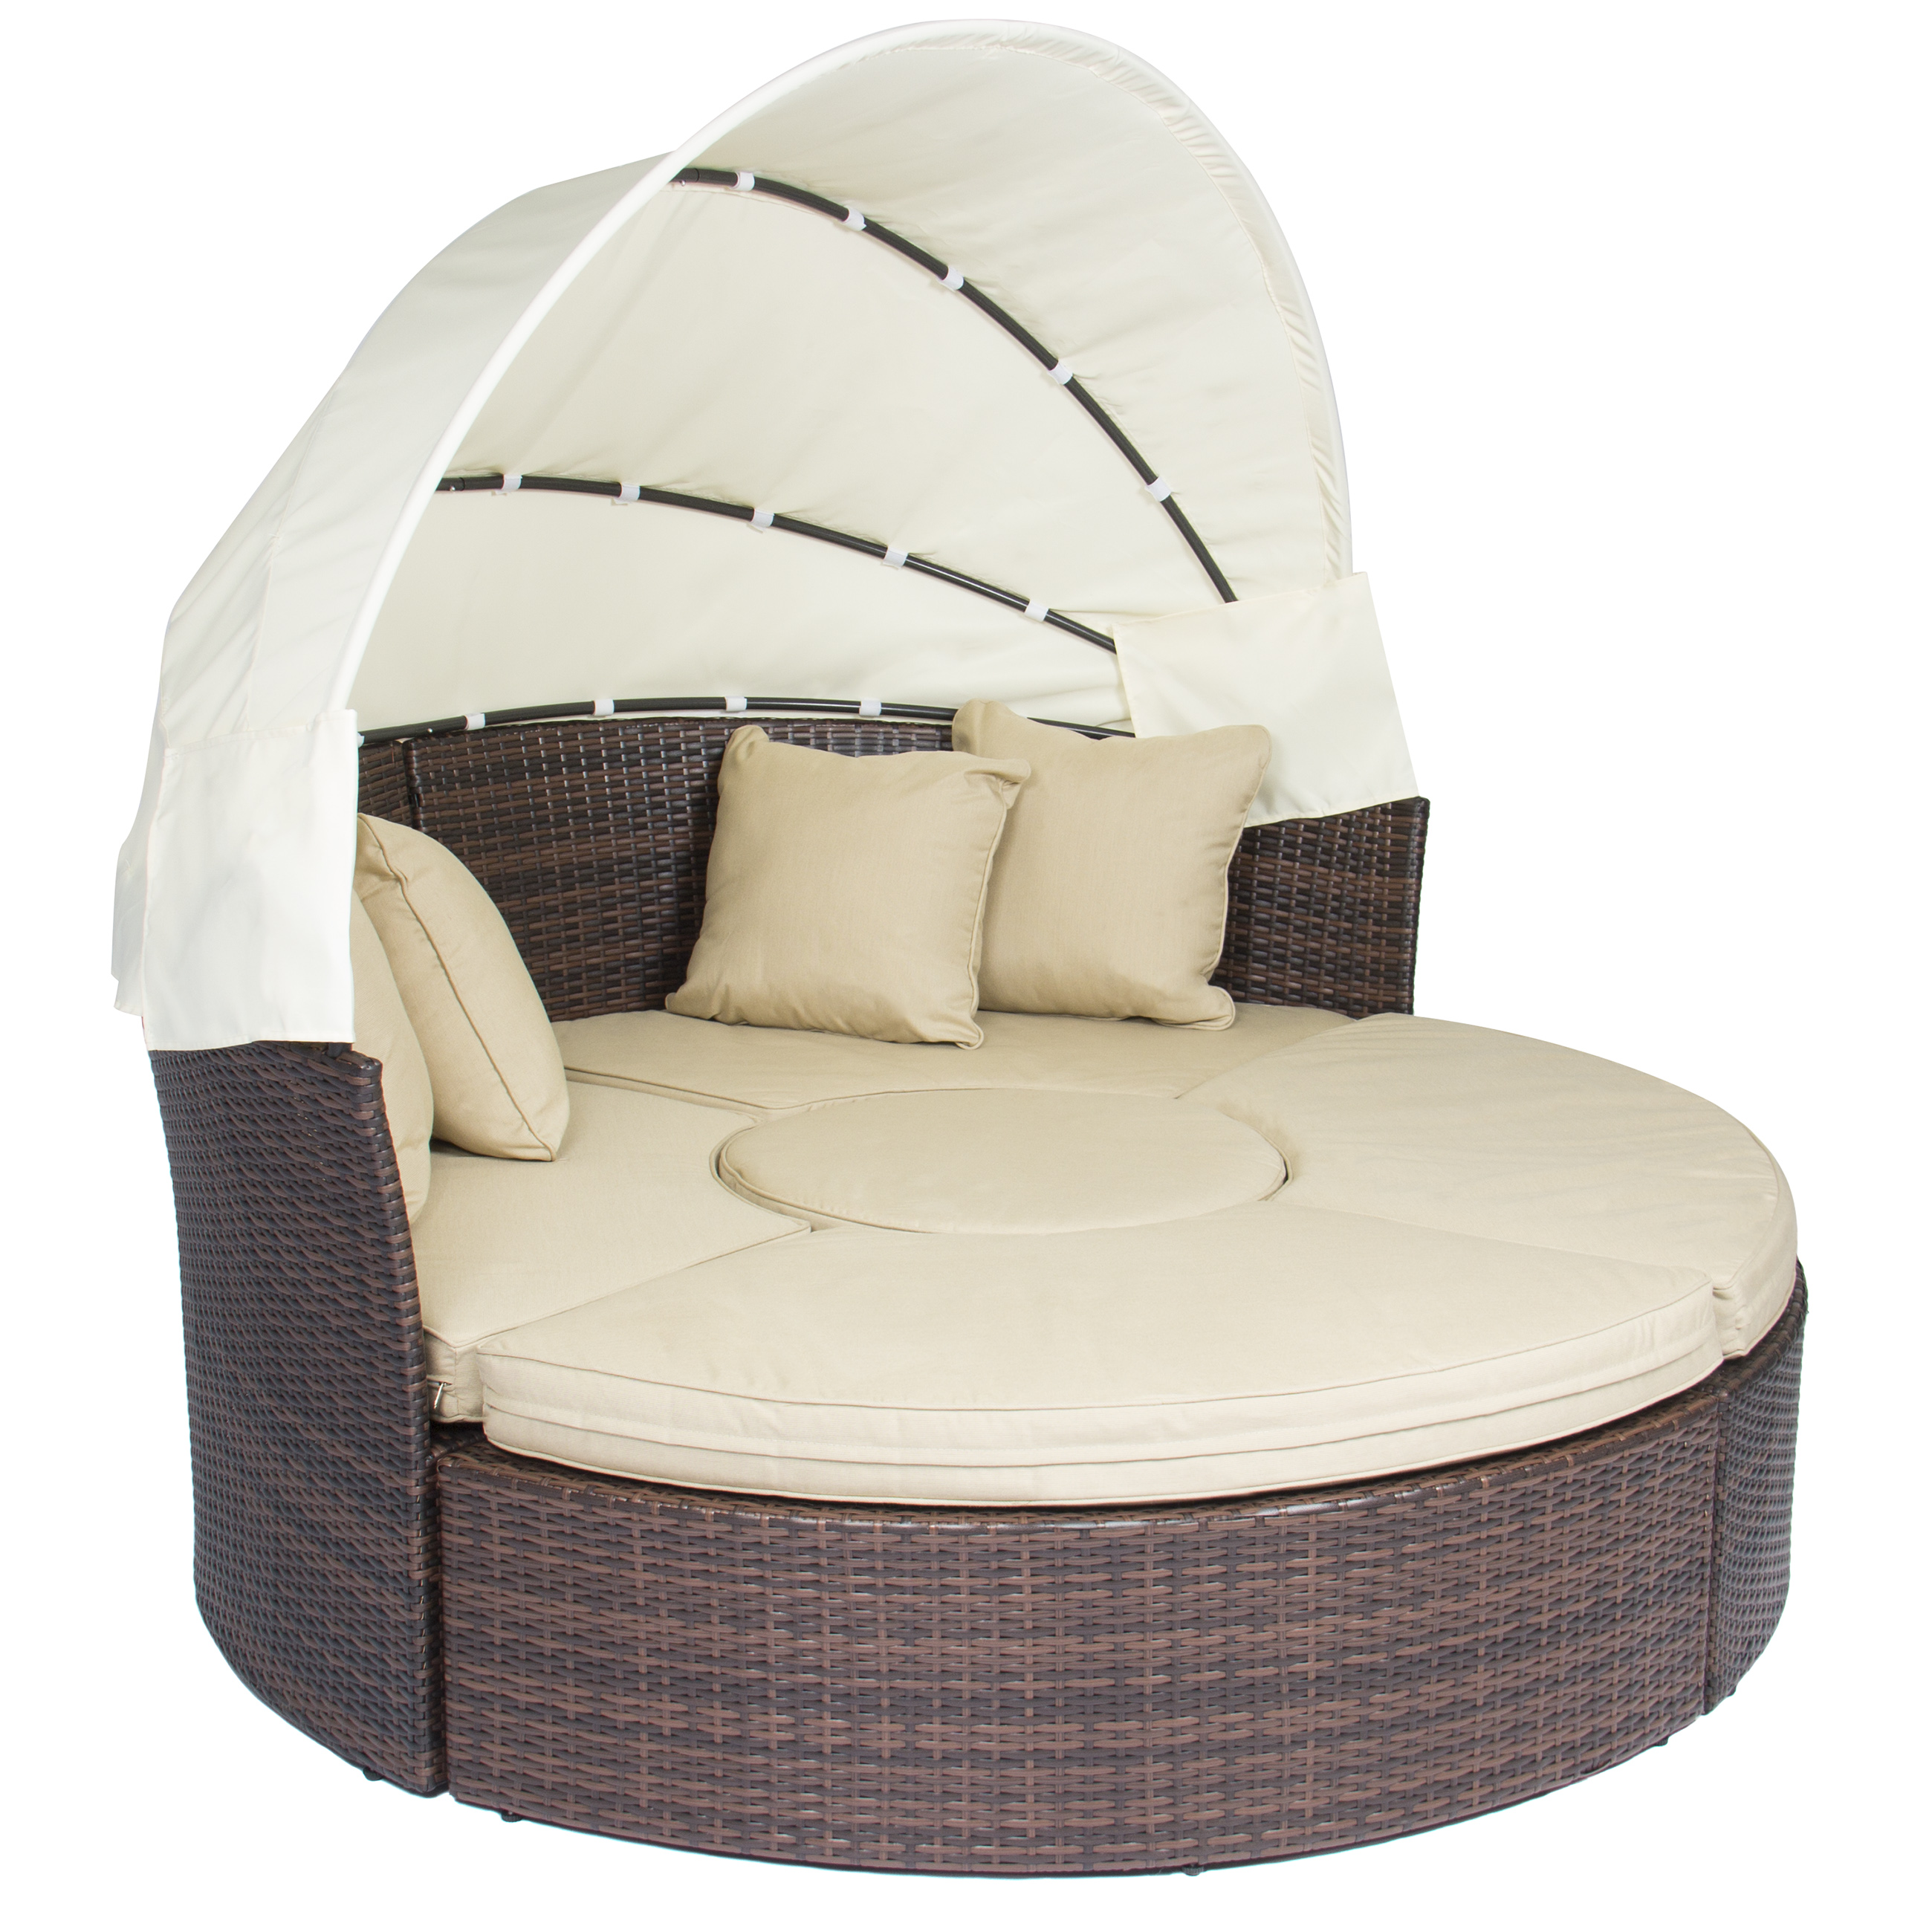 Best Choice Products Outdoor Patio Sofa Furniture Round Retractable Canopy Daybed Brown Wicker Rattan